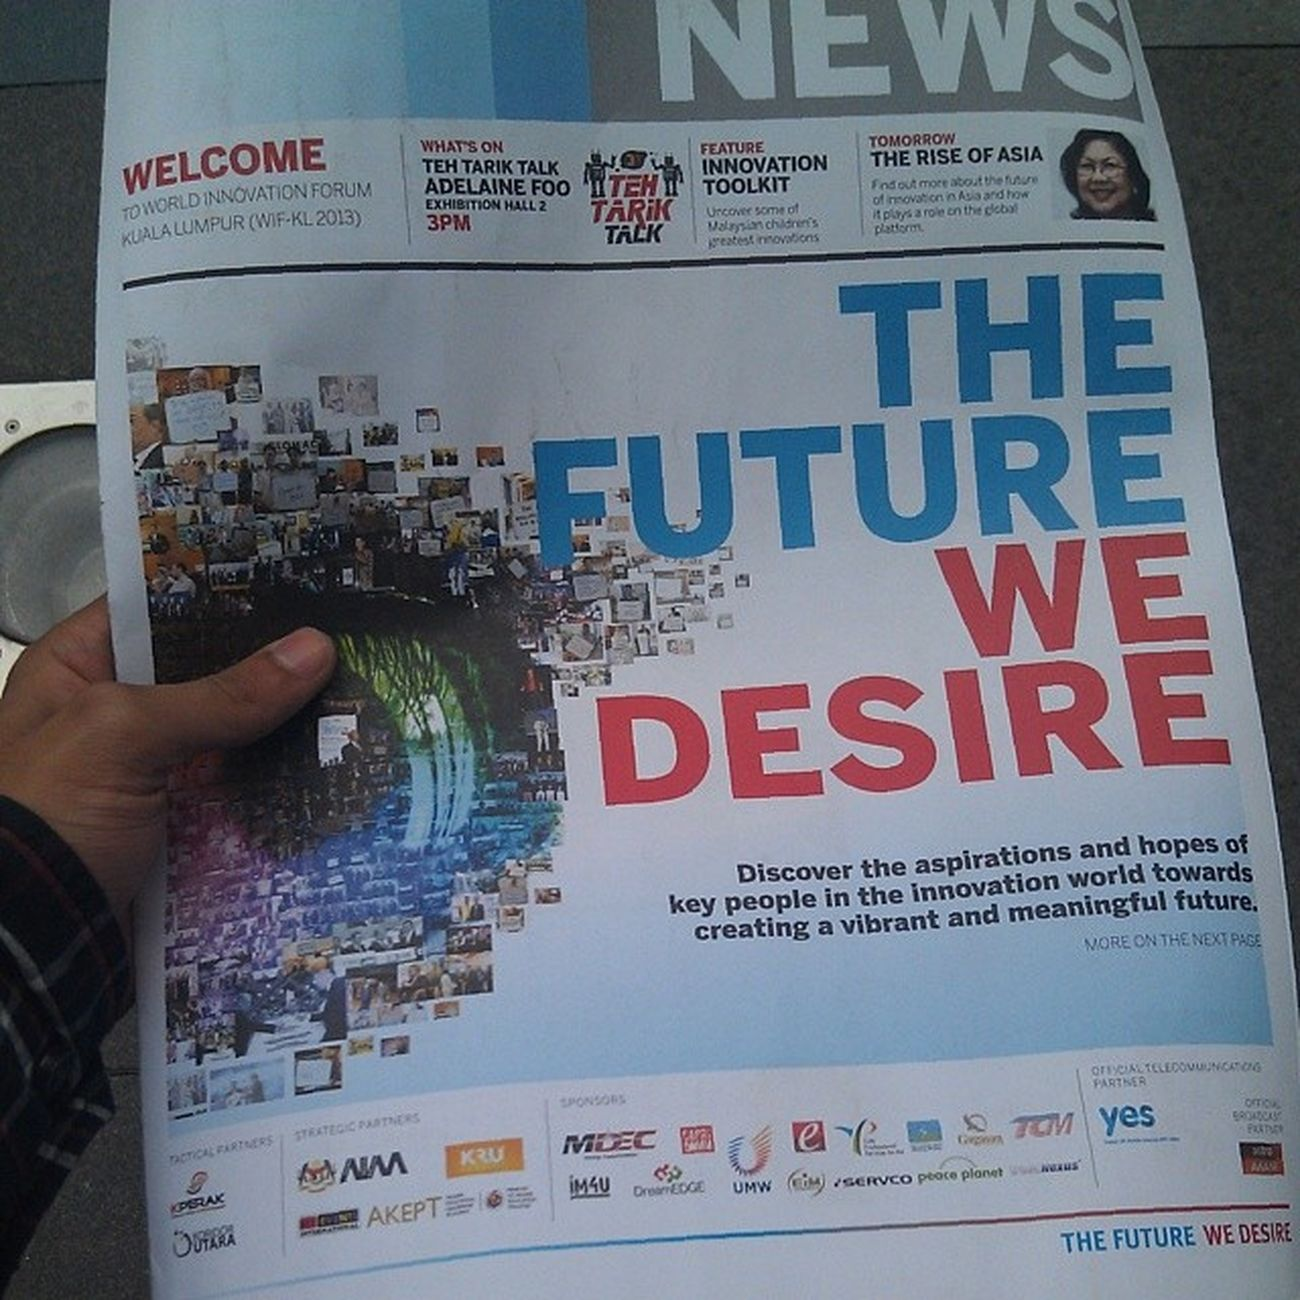 The future we desire Attend Wifkl Klcc Conventioncenter KRU acadee kruacademy future today news